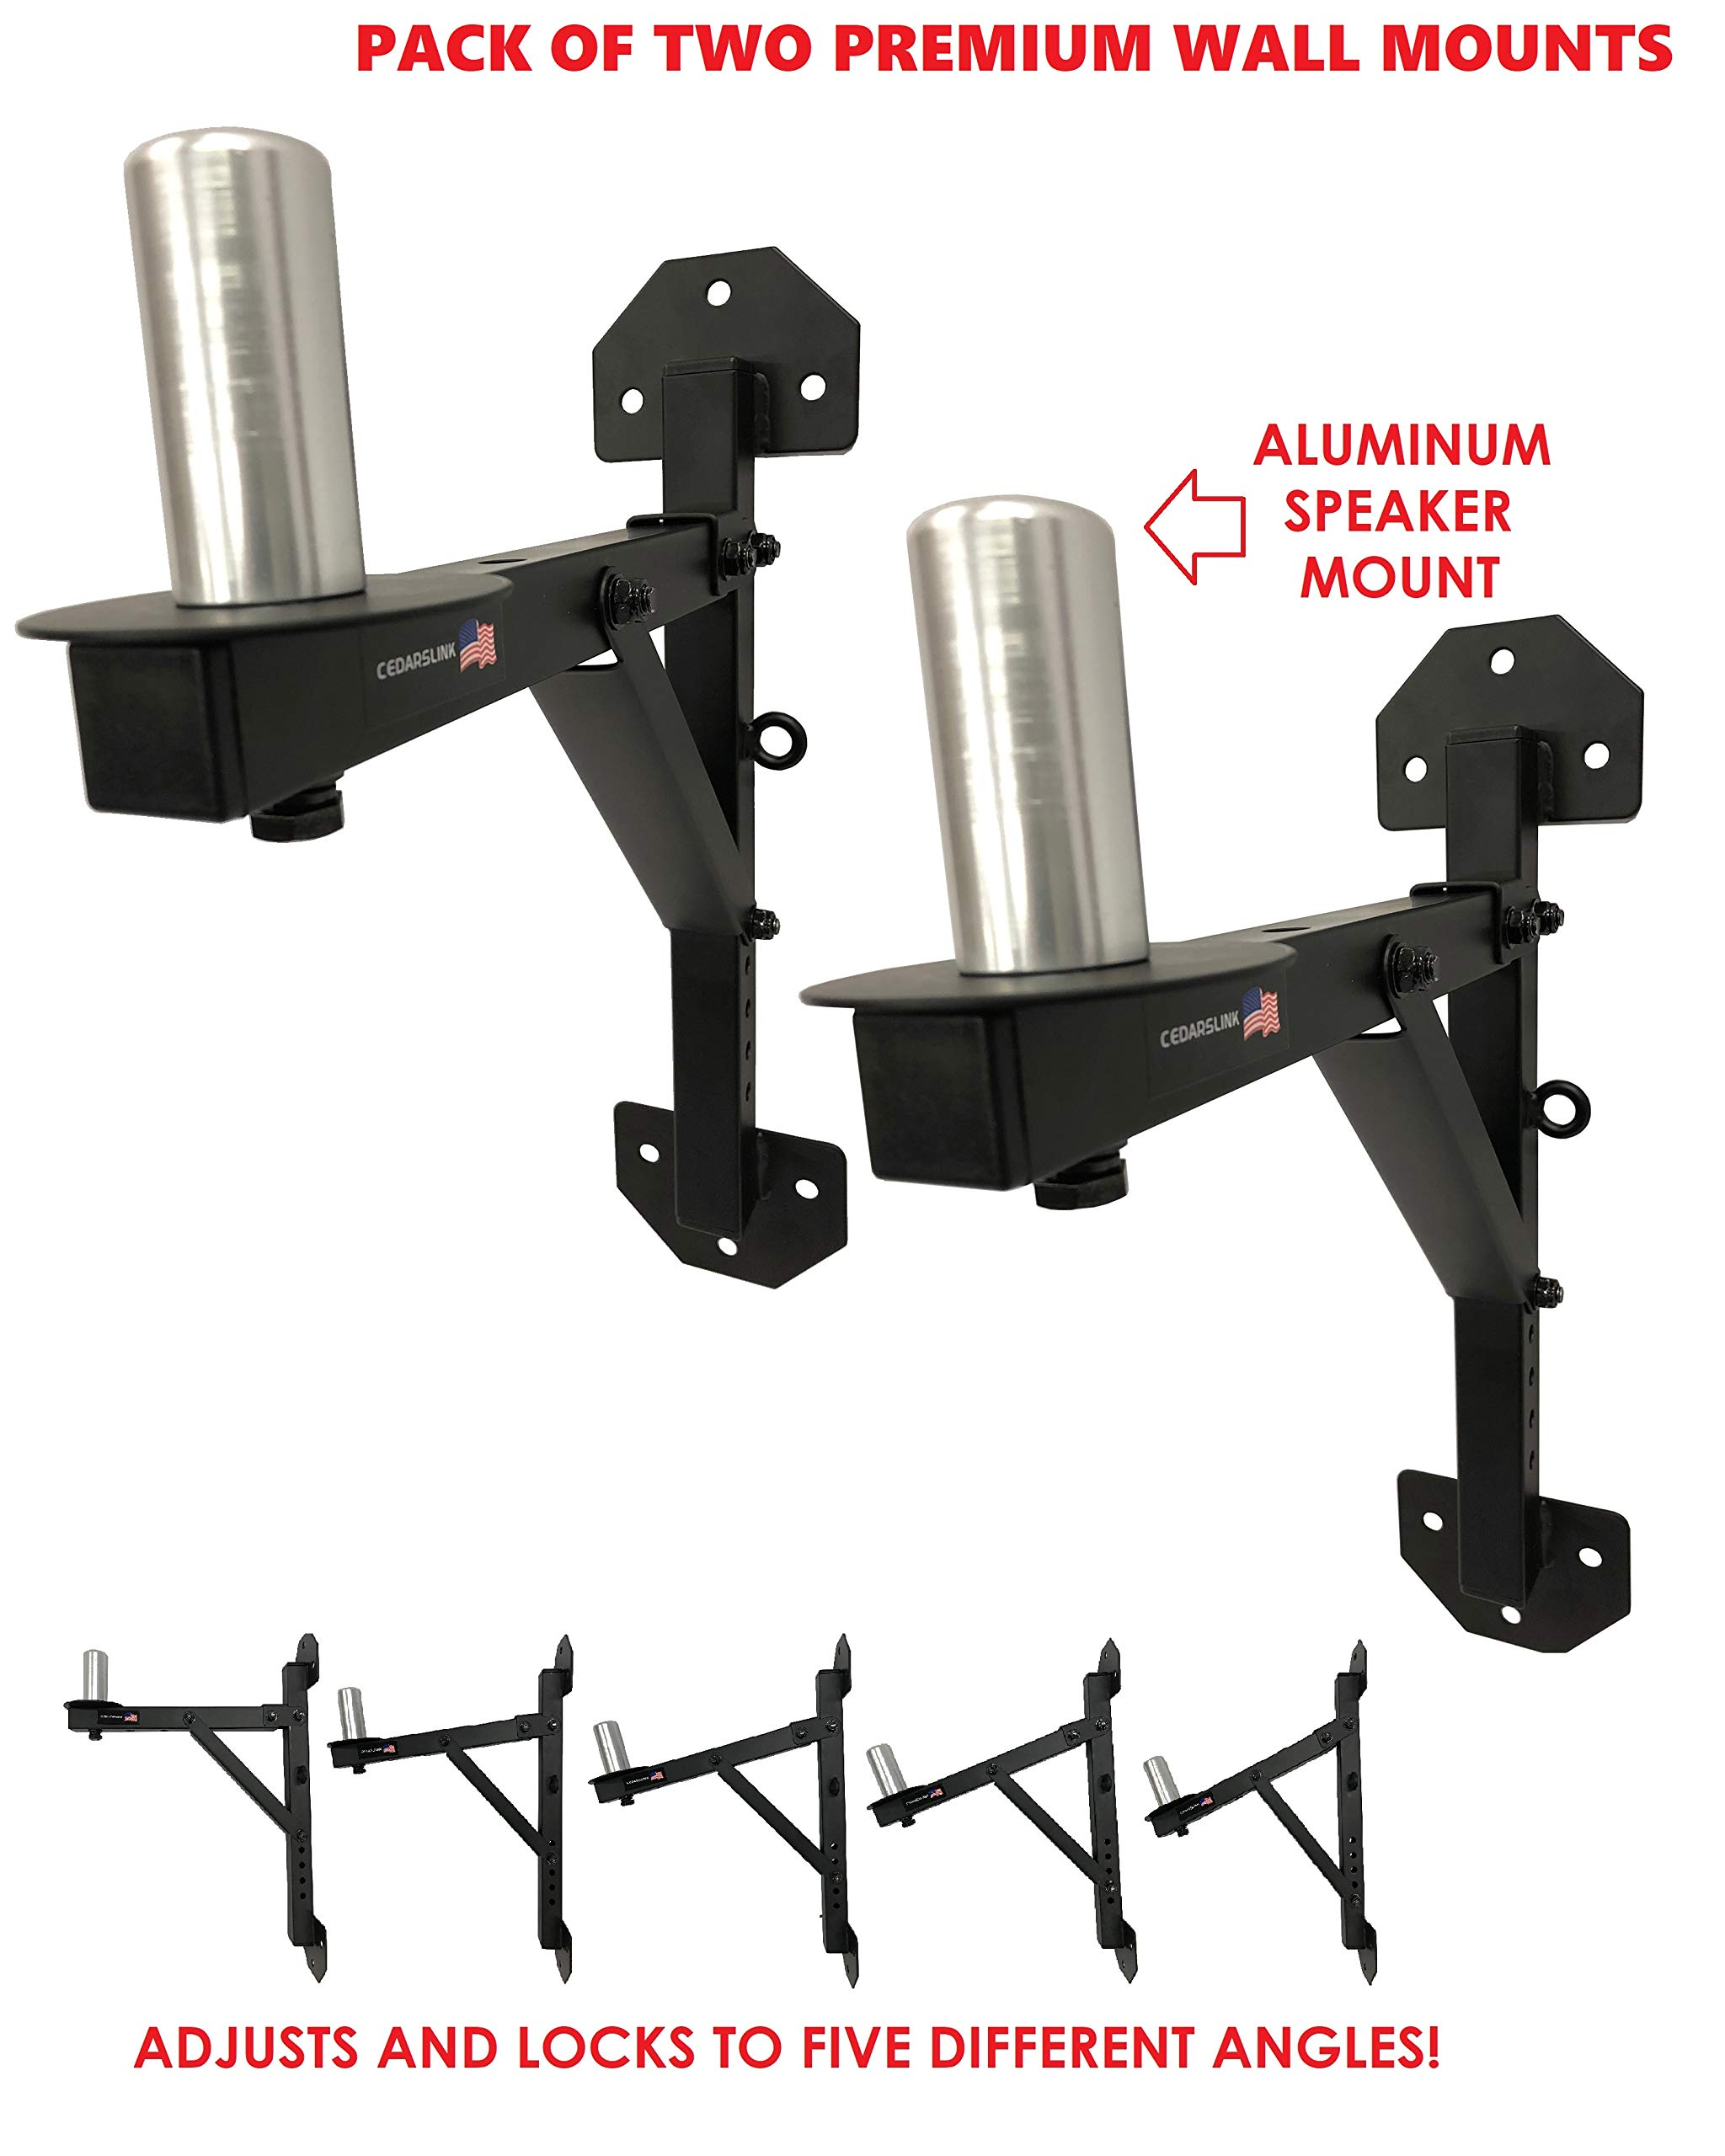 Cedarslink PA Speaker Wall Mount Brackets - 2 Pro-Audio Stands Post Holder DJ Stage. 1-4 Day Shipping! Aluminum Peg Mount! Over 200 LB. Capacity!